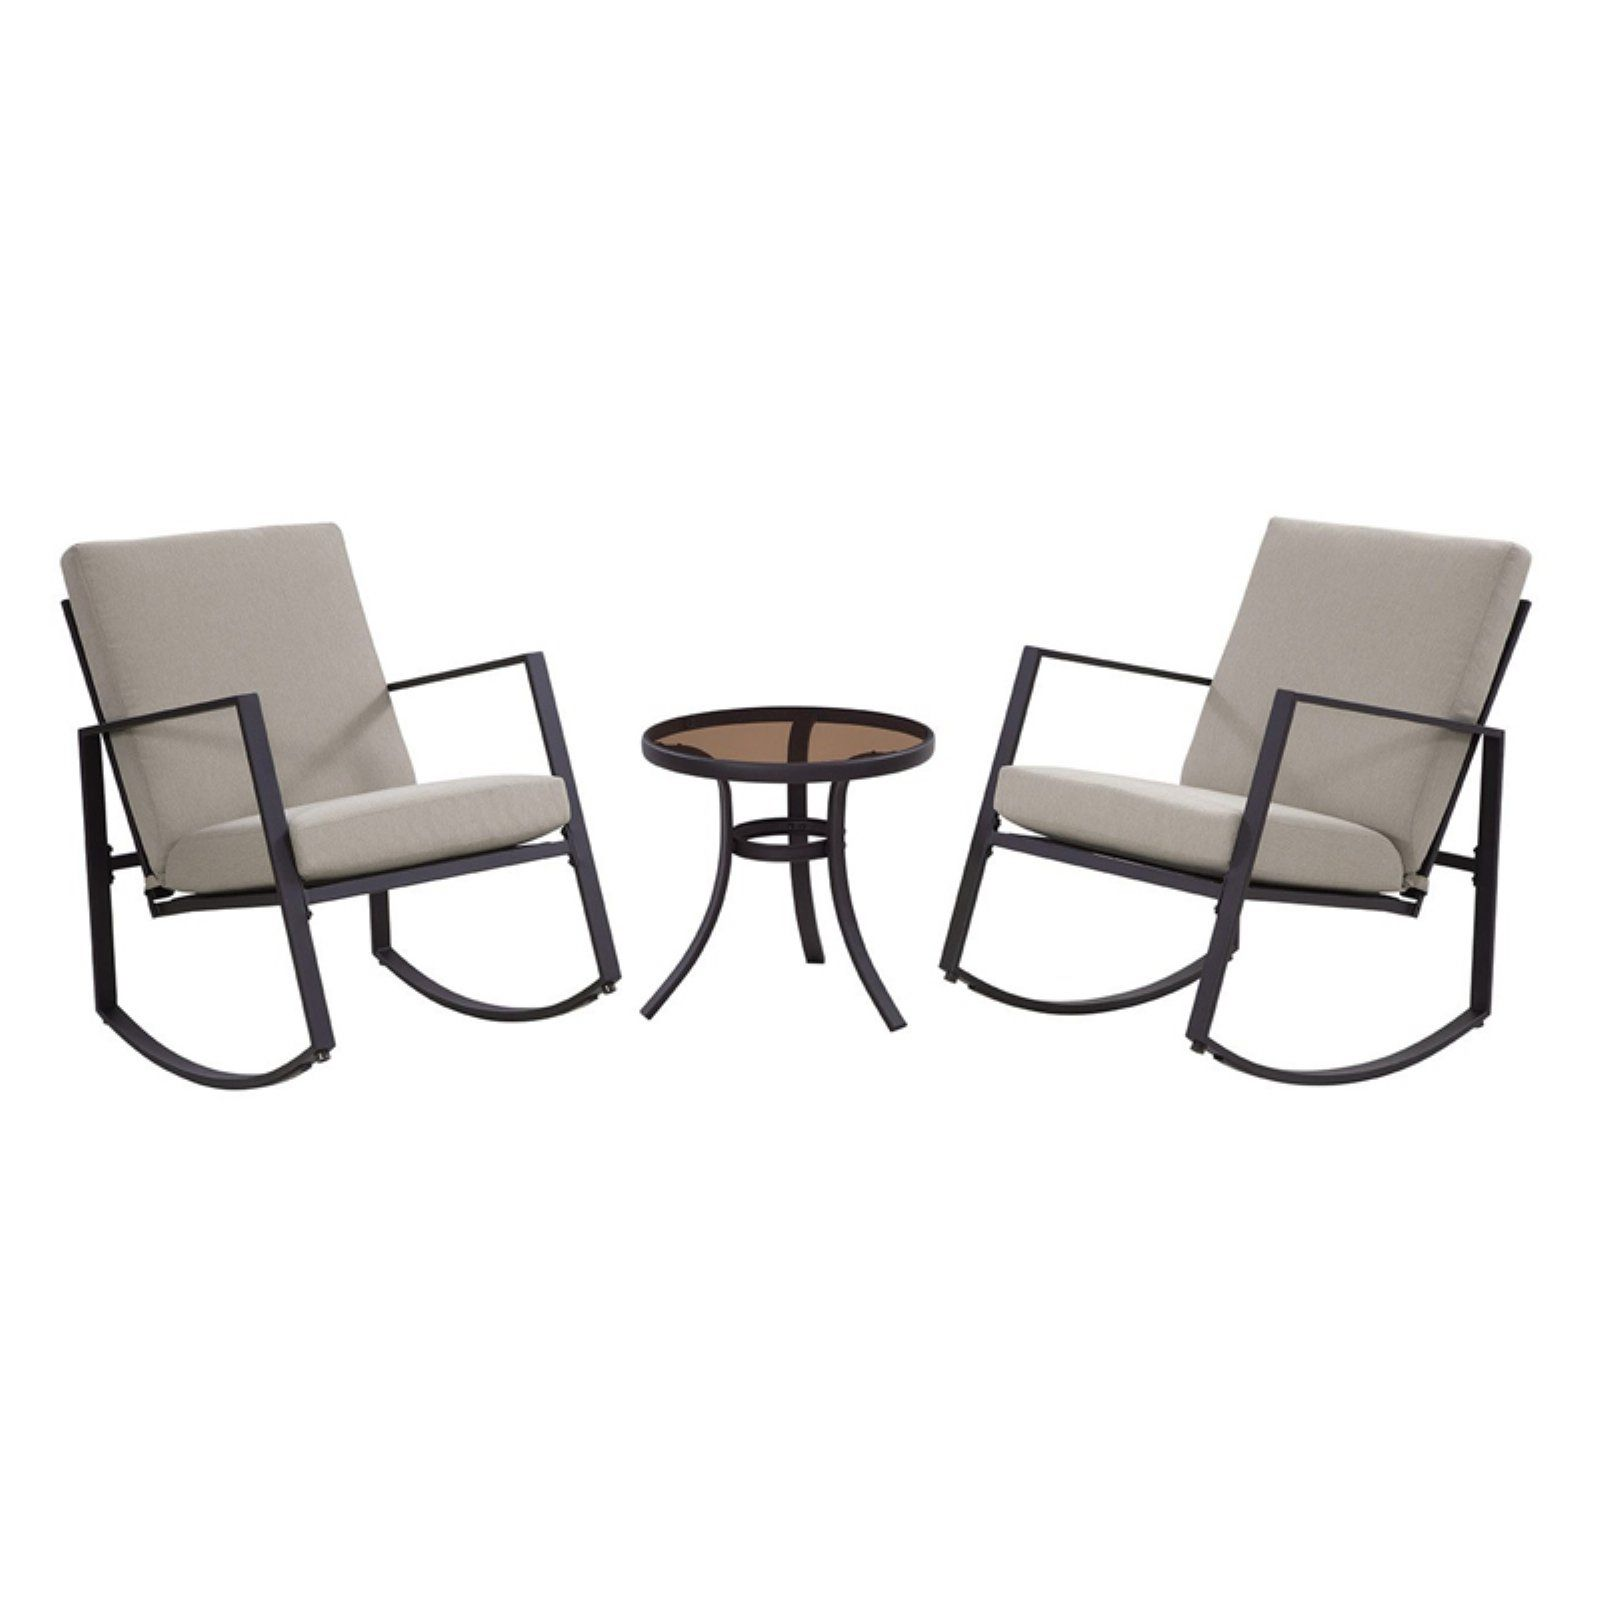 3 Piece Patio Set With Red Cushions